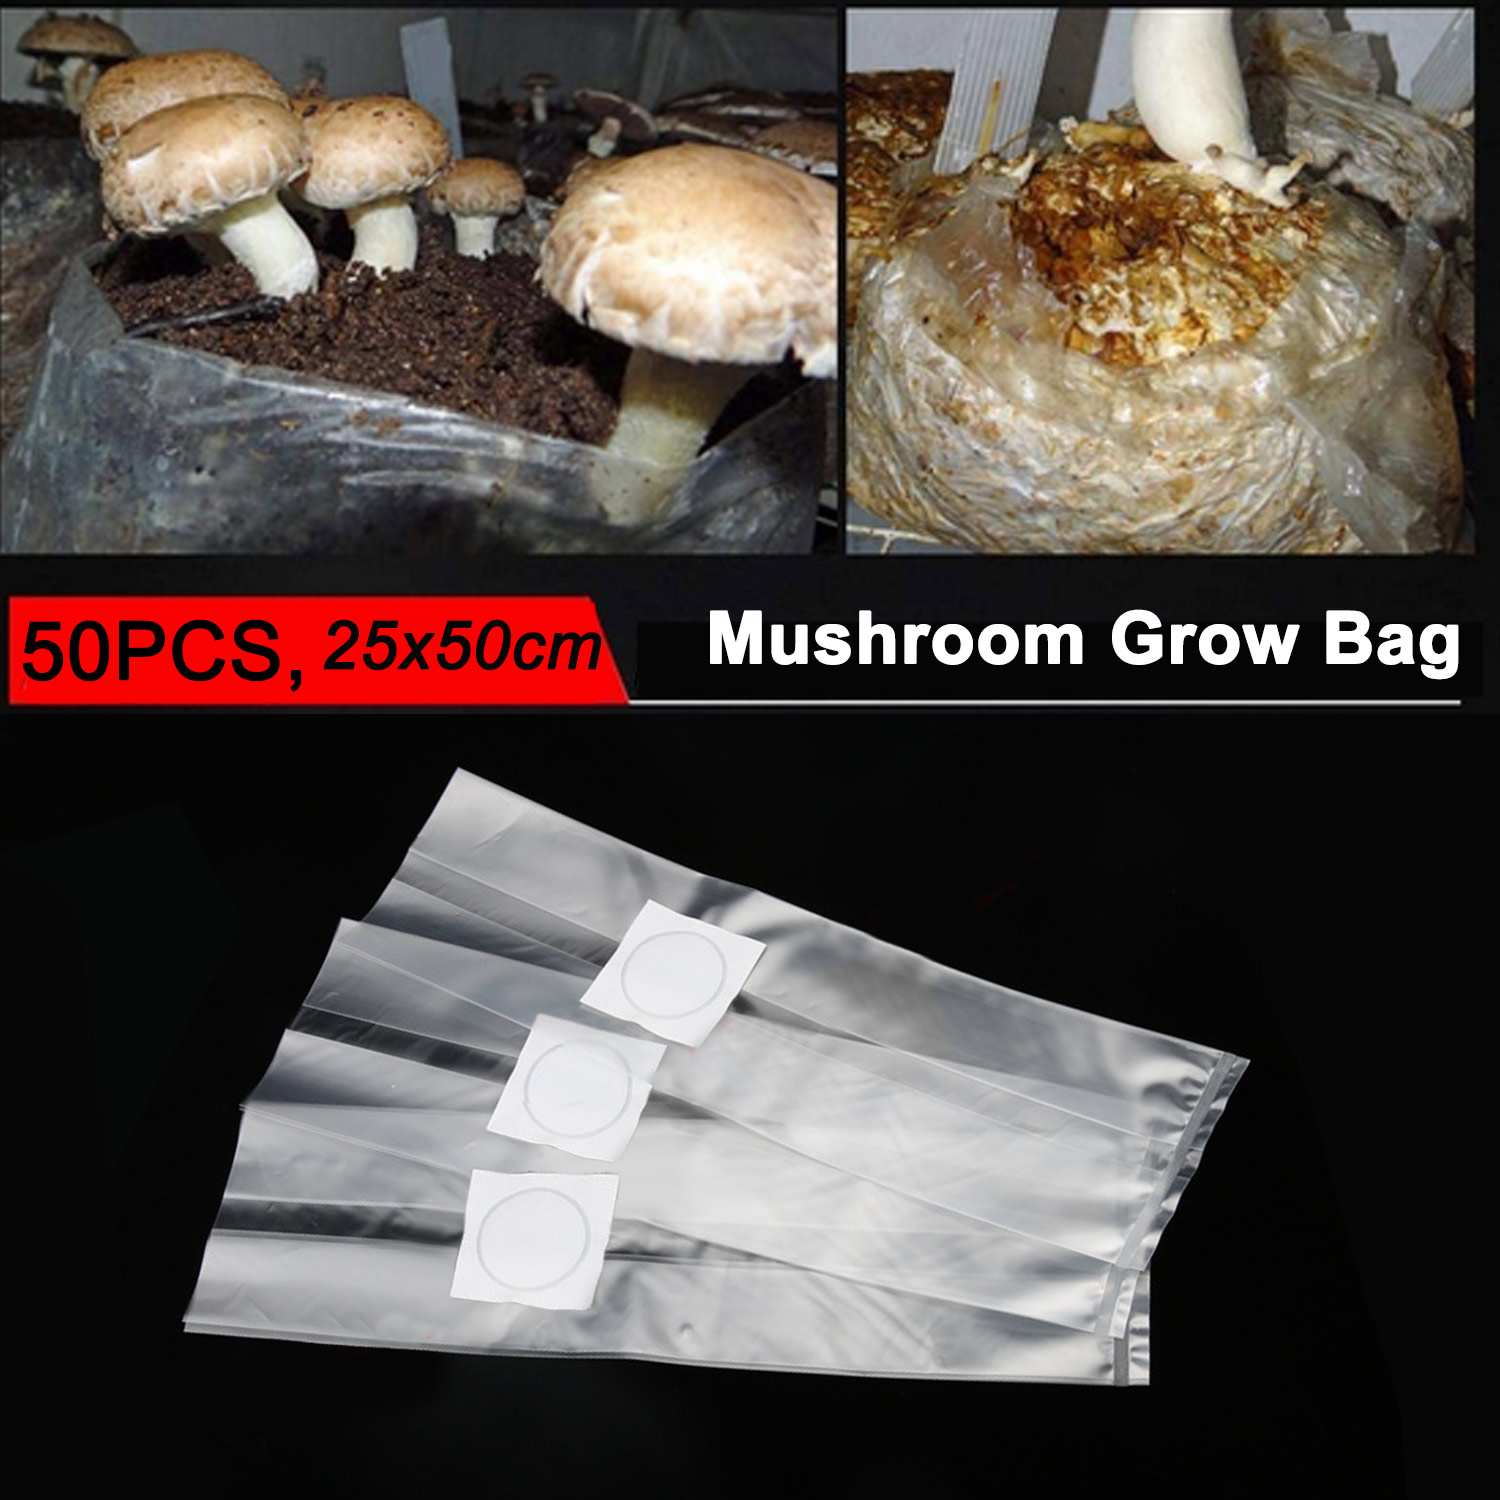 Behogar 50pcs Mushroom Spawn Growing Bag 0.2 Micron Filter Breathable 6 Mil Edible Fungus Cultivation Bag For Gardening Planting